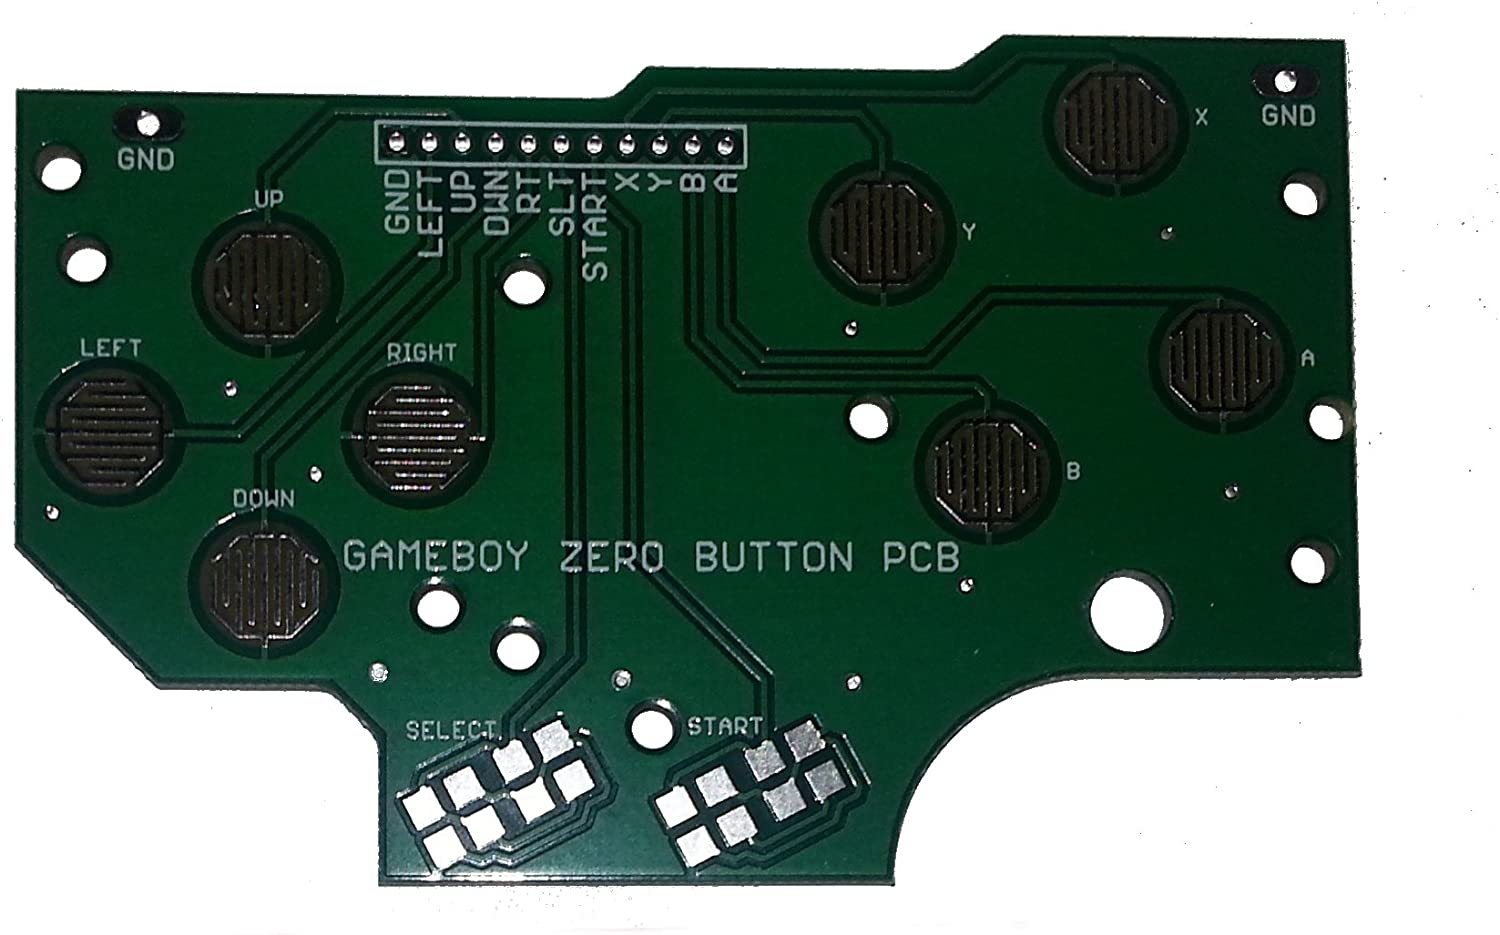 4 Button PCB For Gameboy DMG-01DIY Pi Zero Made In USA With Grounds and Hole Guide BY:Atomic Market 8 Bit Oldies 4_button_pcb_GBZ